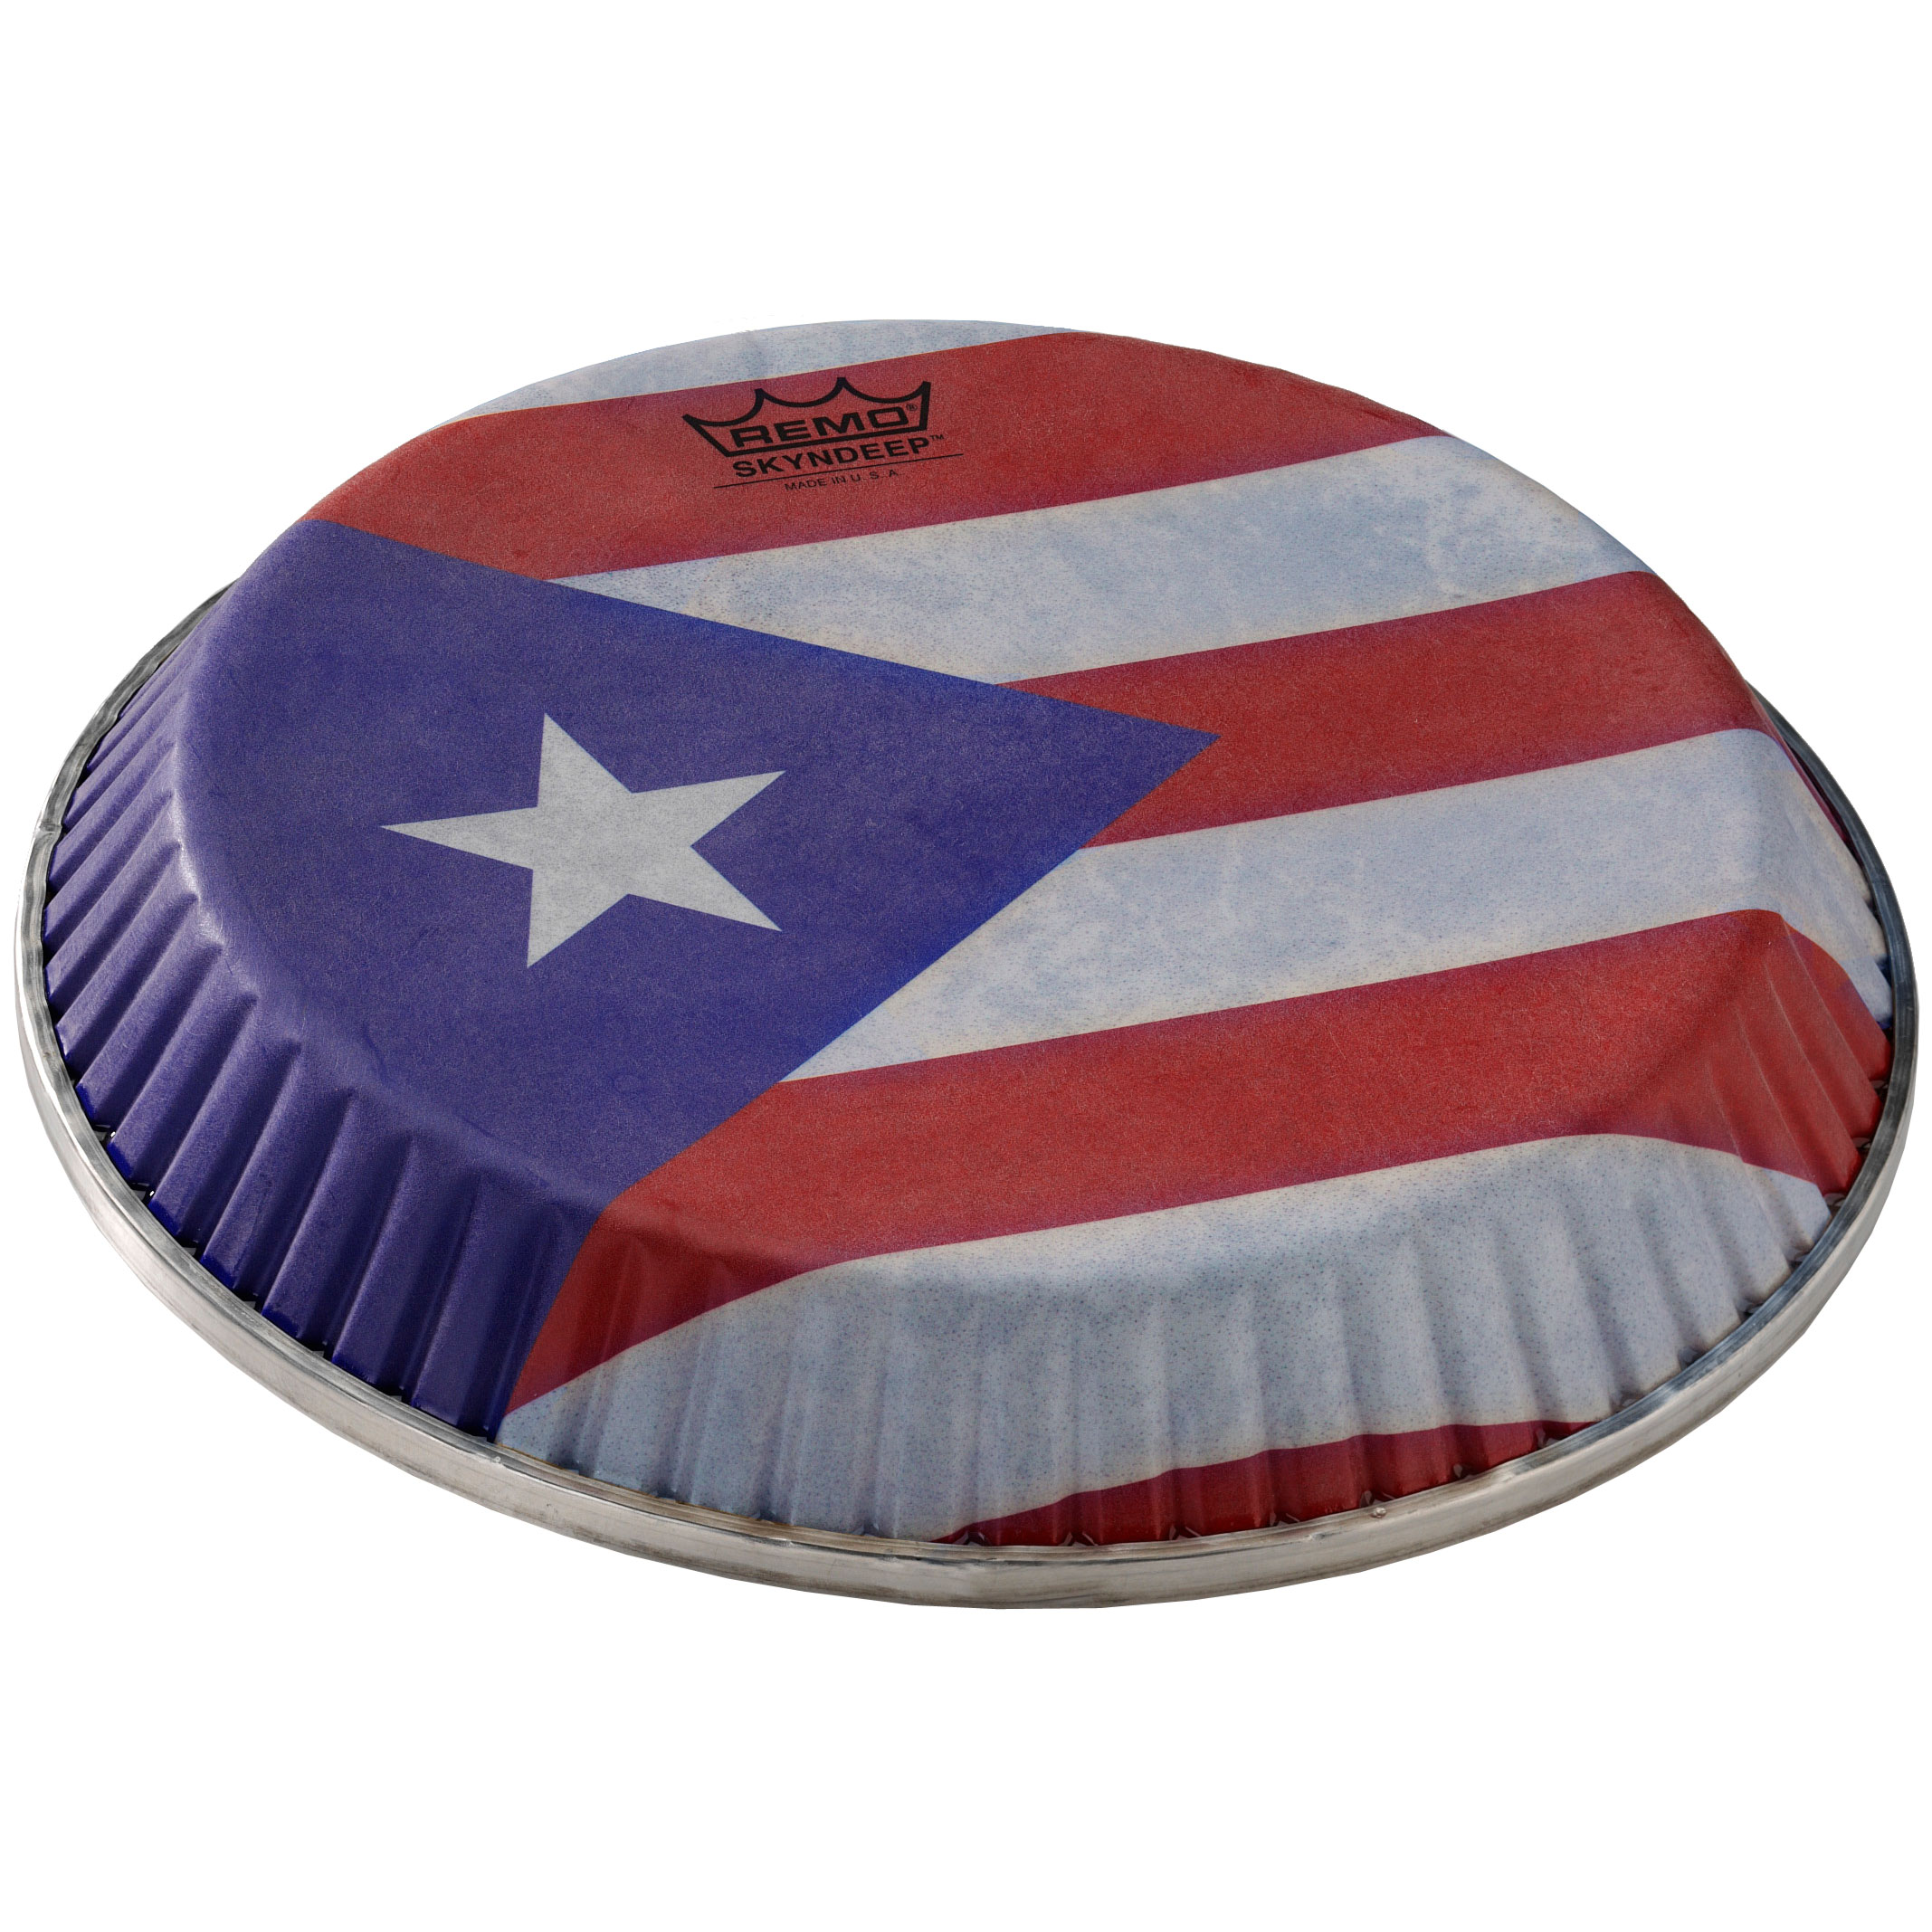 "Remo 10.75"" Symmetry Skyndeep Conga Drum Head (D1 Collar) with Puerto Rican Flag Graphic"